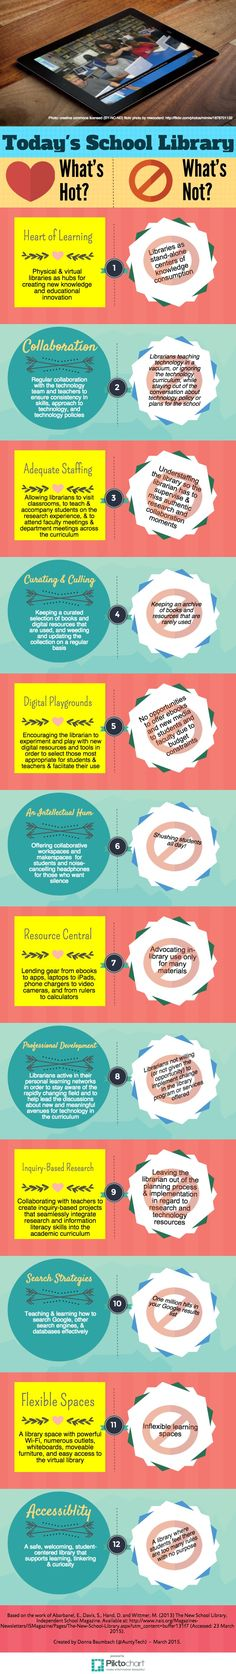 Today's School Library | Piktochart Infographic Editor